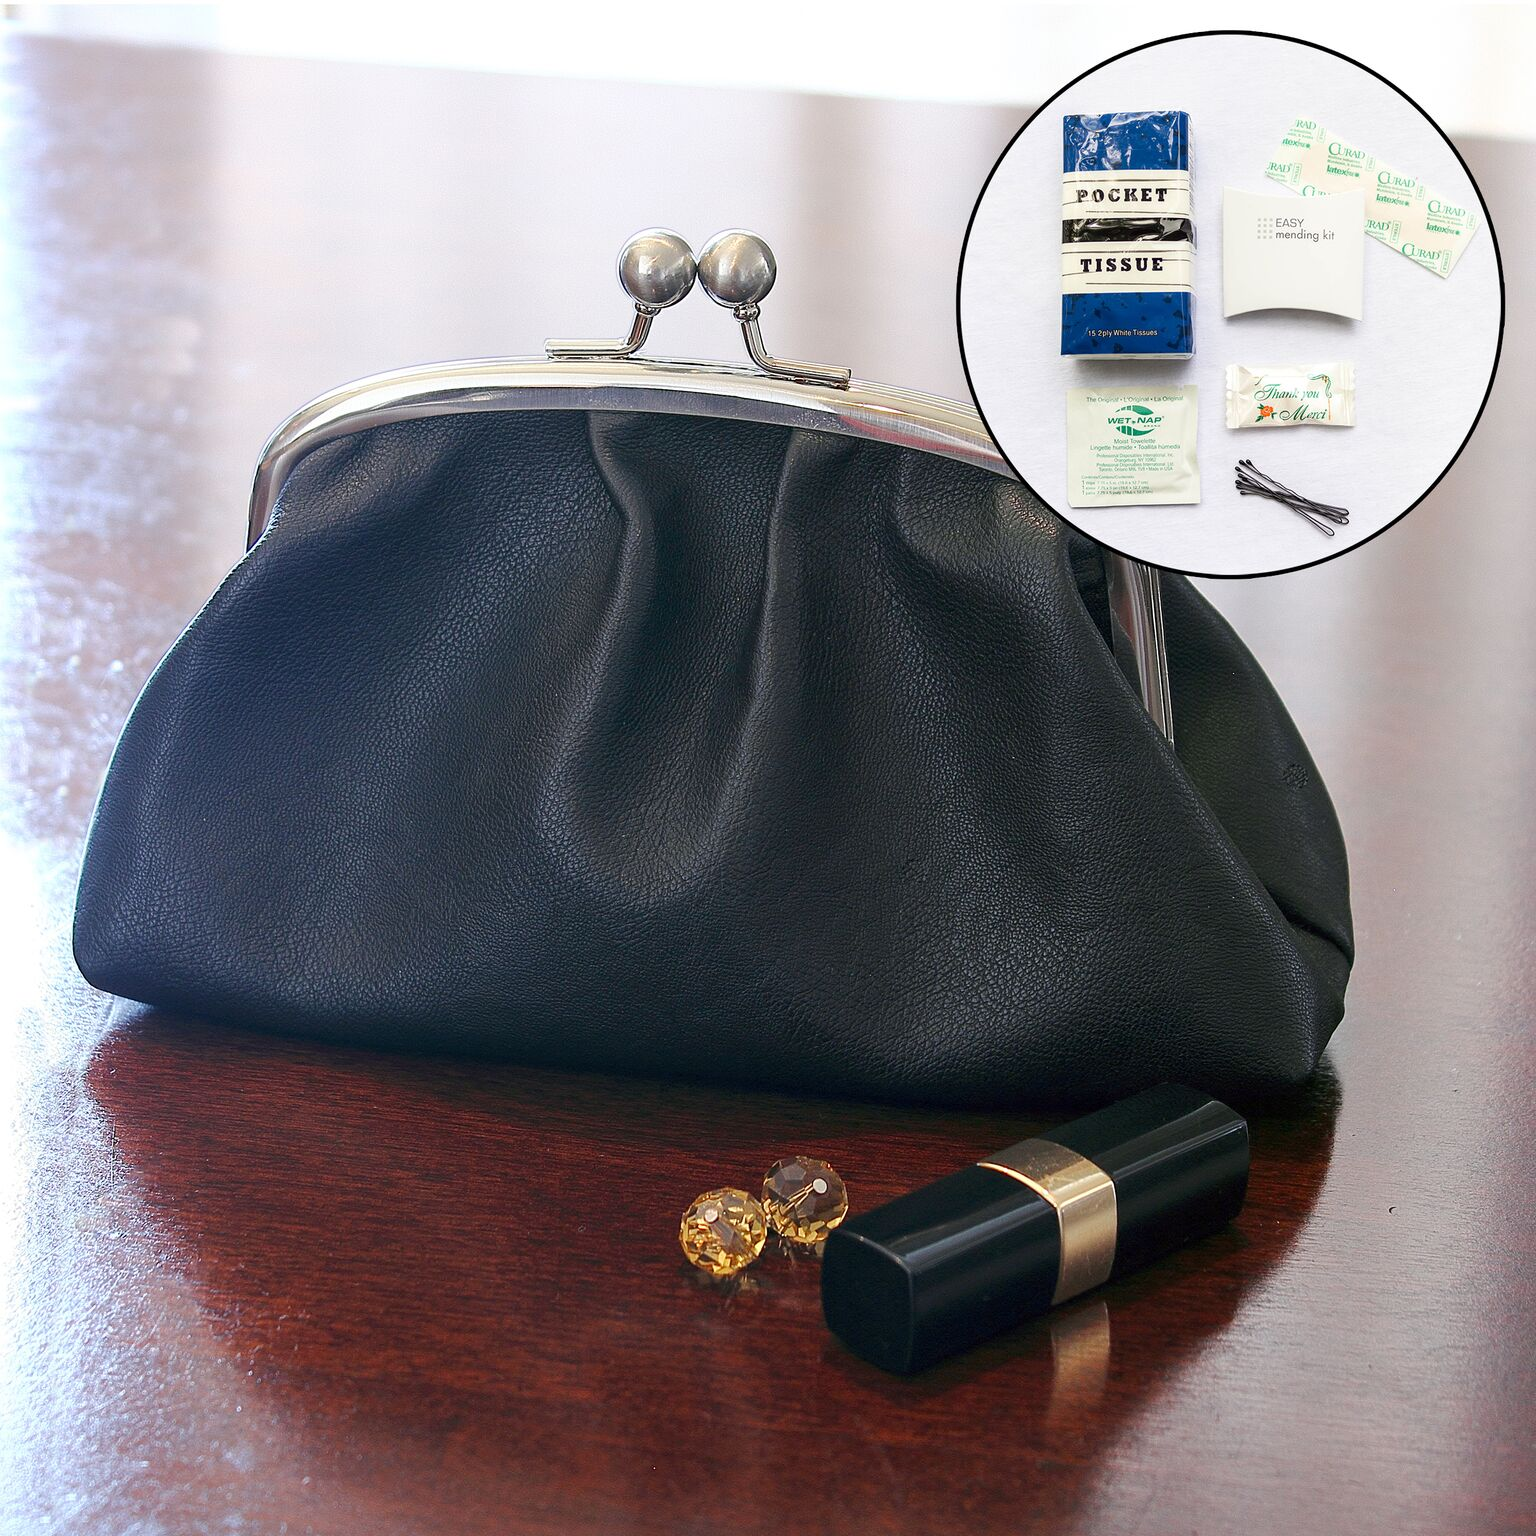 Cathys Concepts 2079BS 4.25 in. Vintage Clutch with Survival Kit, Matte Satin & Faux leather